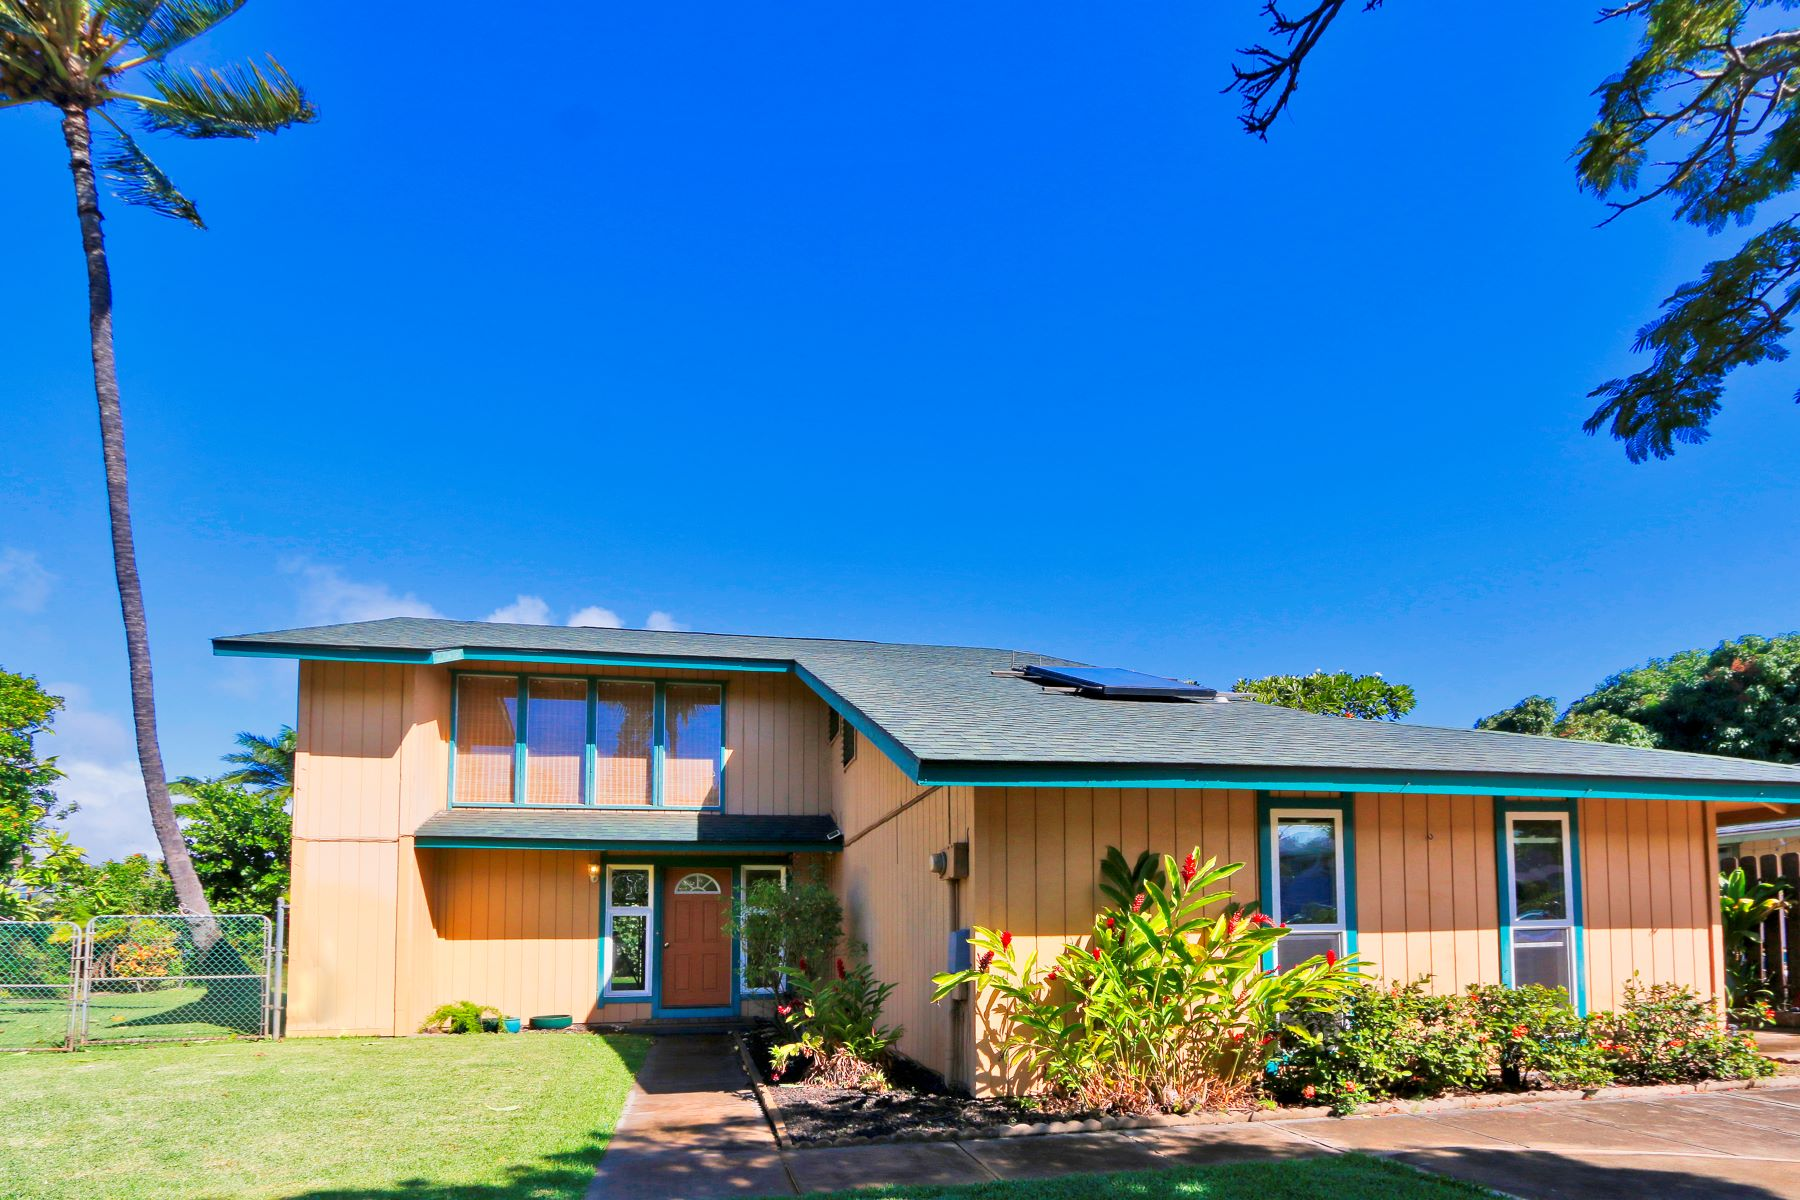 Single Family Home for Active at South Maui Family Home on Quiet Cul-De-Sac 99 Mehani Place Kihei, Hawaii 96753 United States